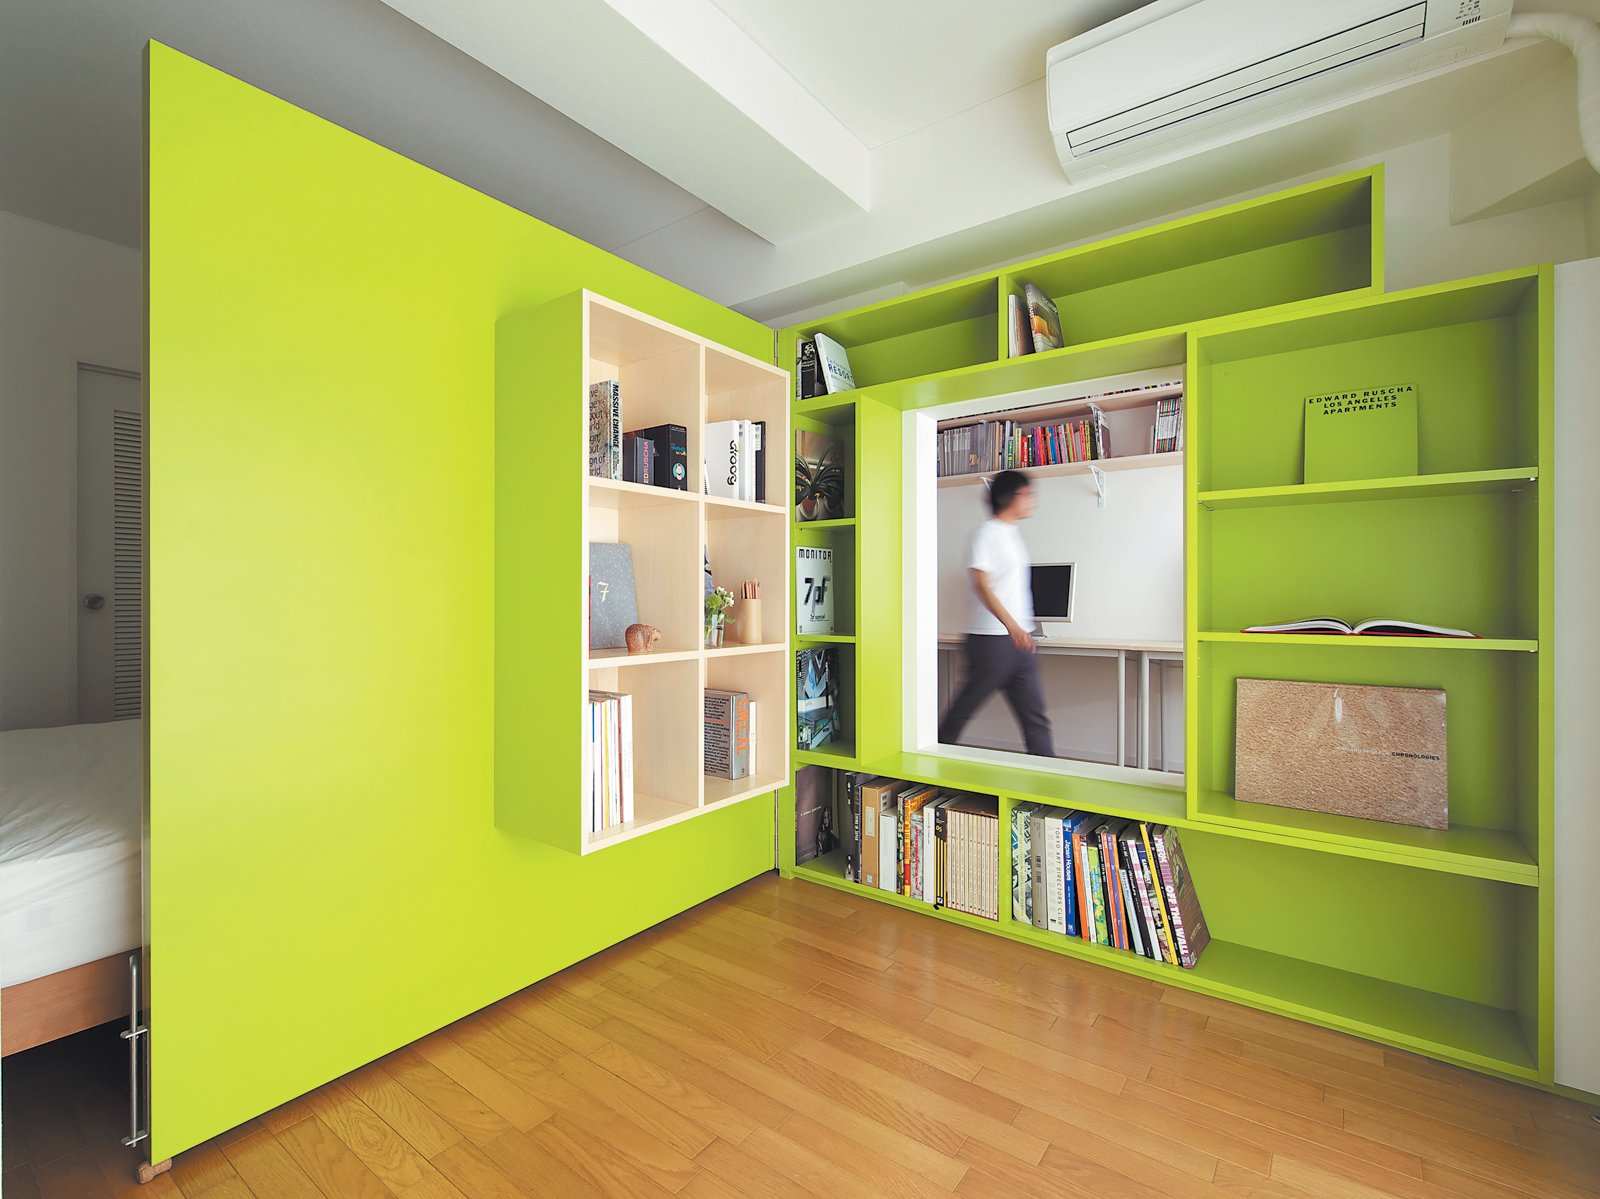 Storage and Shelves Shibata wanted more shelf space in her home office, so she added a plywood door with built-in bookshelves that opens into her bedroom to form a reading nook. Glimpsed from the adjacent room, the space looks larger than it actually is, thanks to the bright green walls.  Best Storage Shelves Photos from This Shape-Shifting Apartment Lets an Architect Work from Home